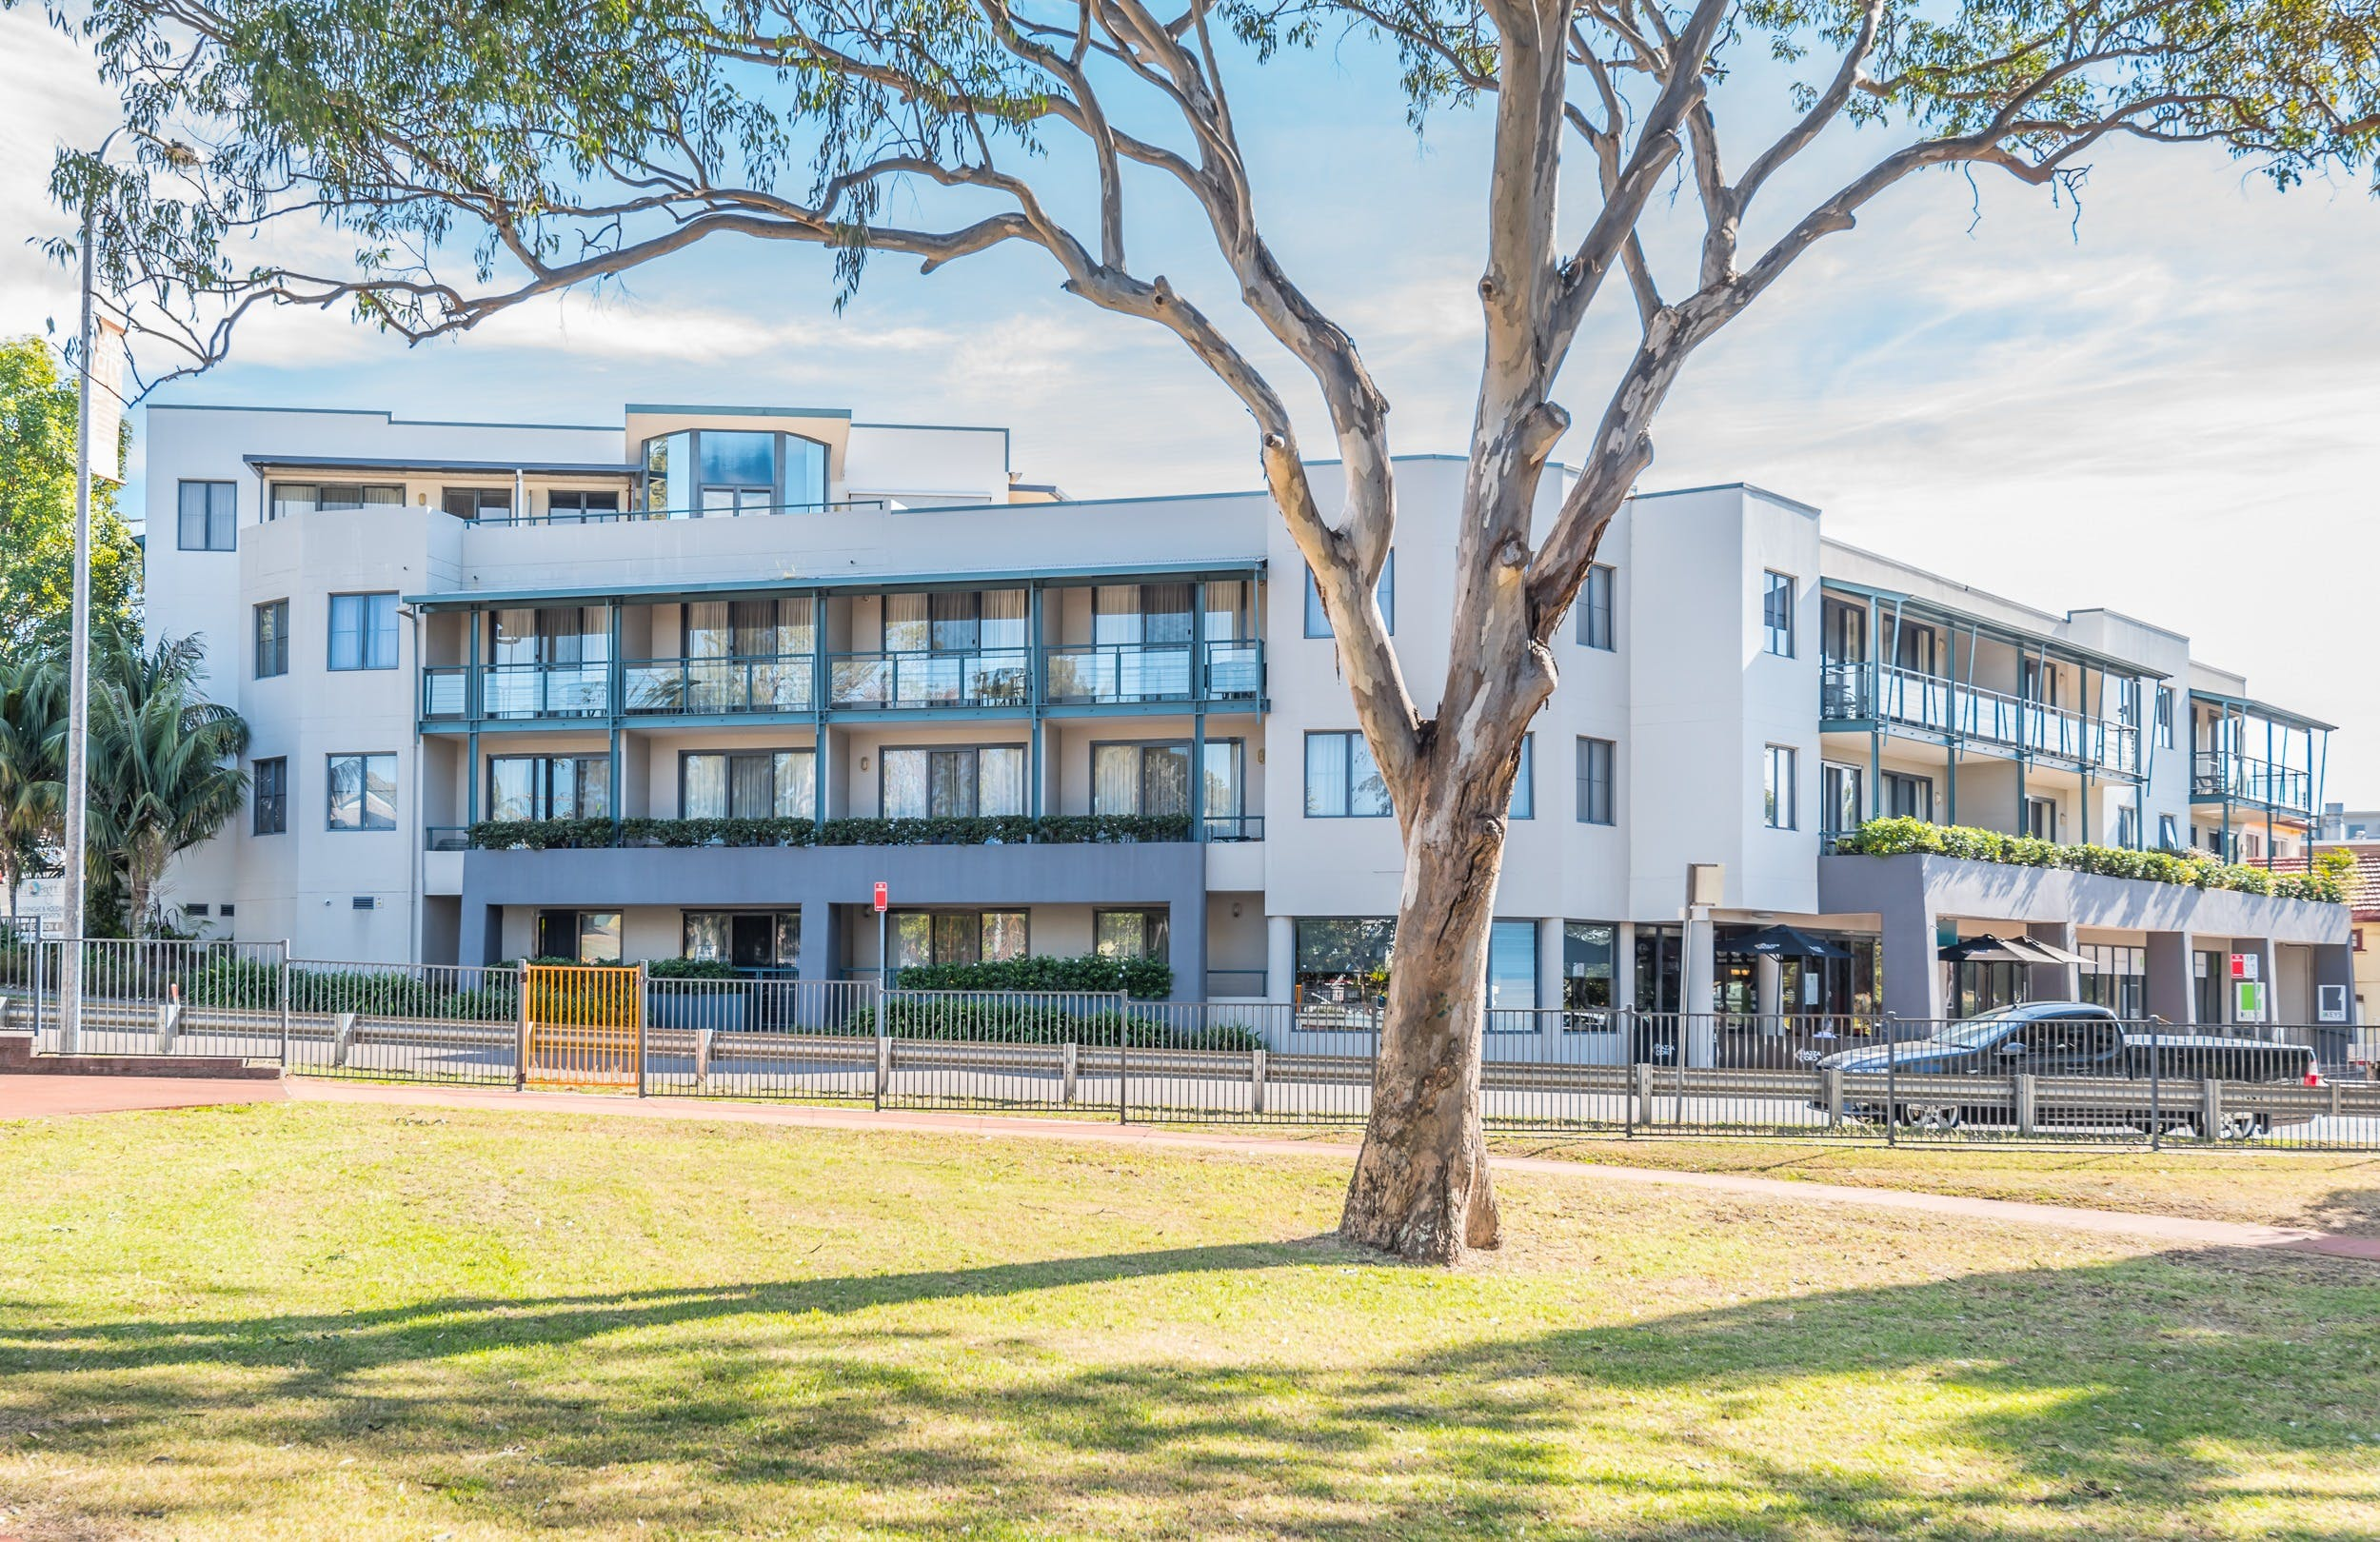 The Brighton Apartments - Tourism Brisbane